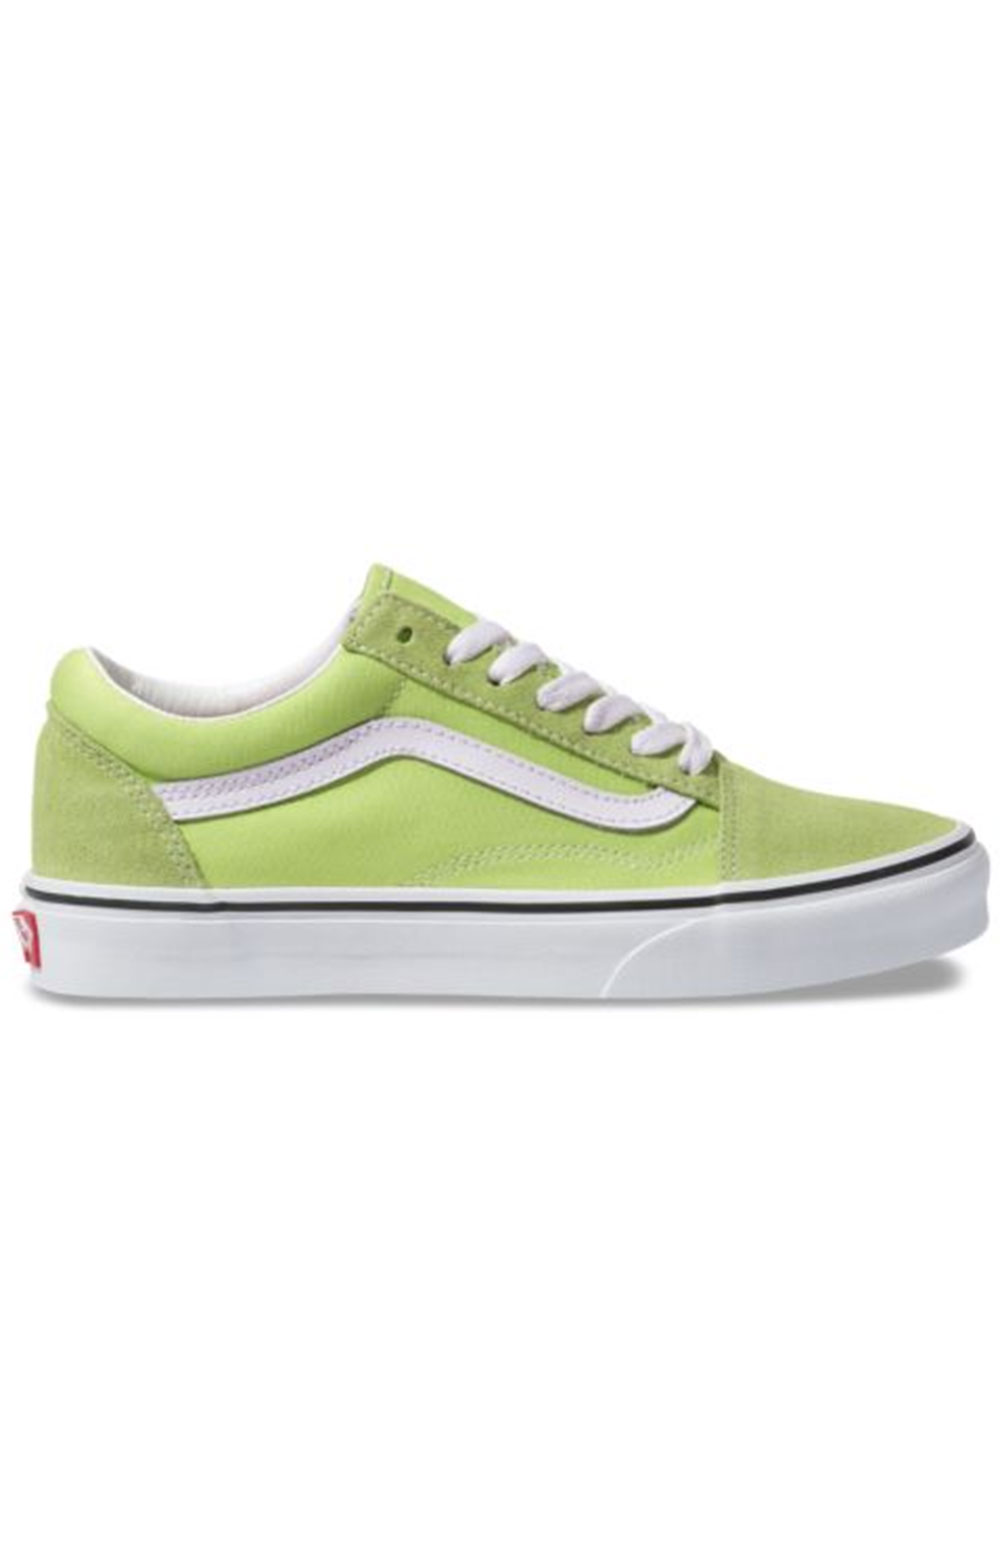 (BV5V9K) Old Skool Shoe - Sharp Green